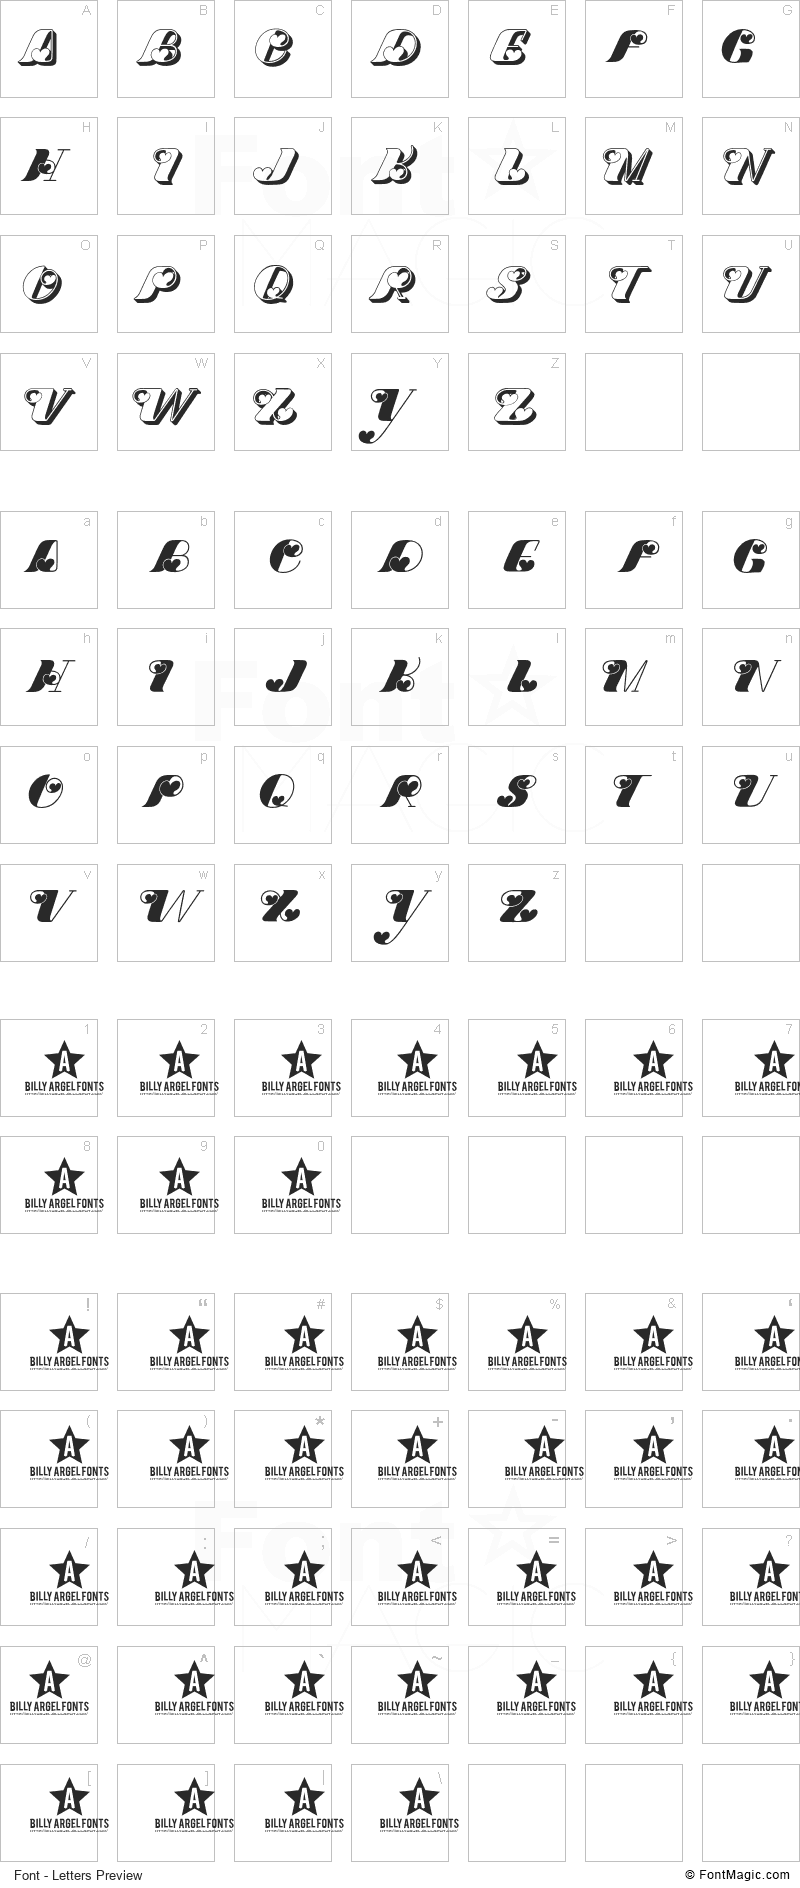 Dove Love Font - All Latters Preview Chart